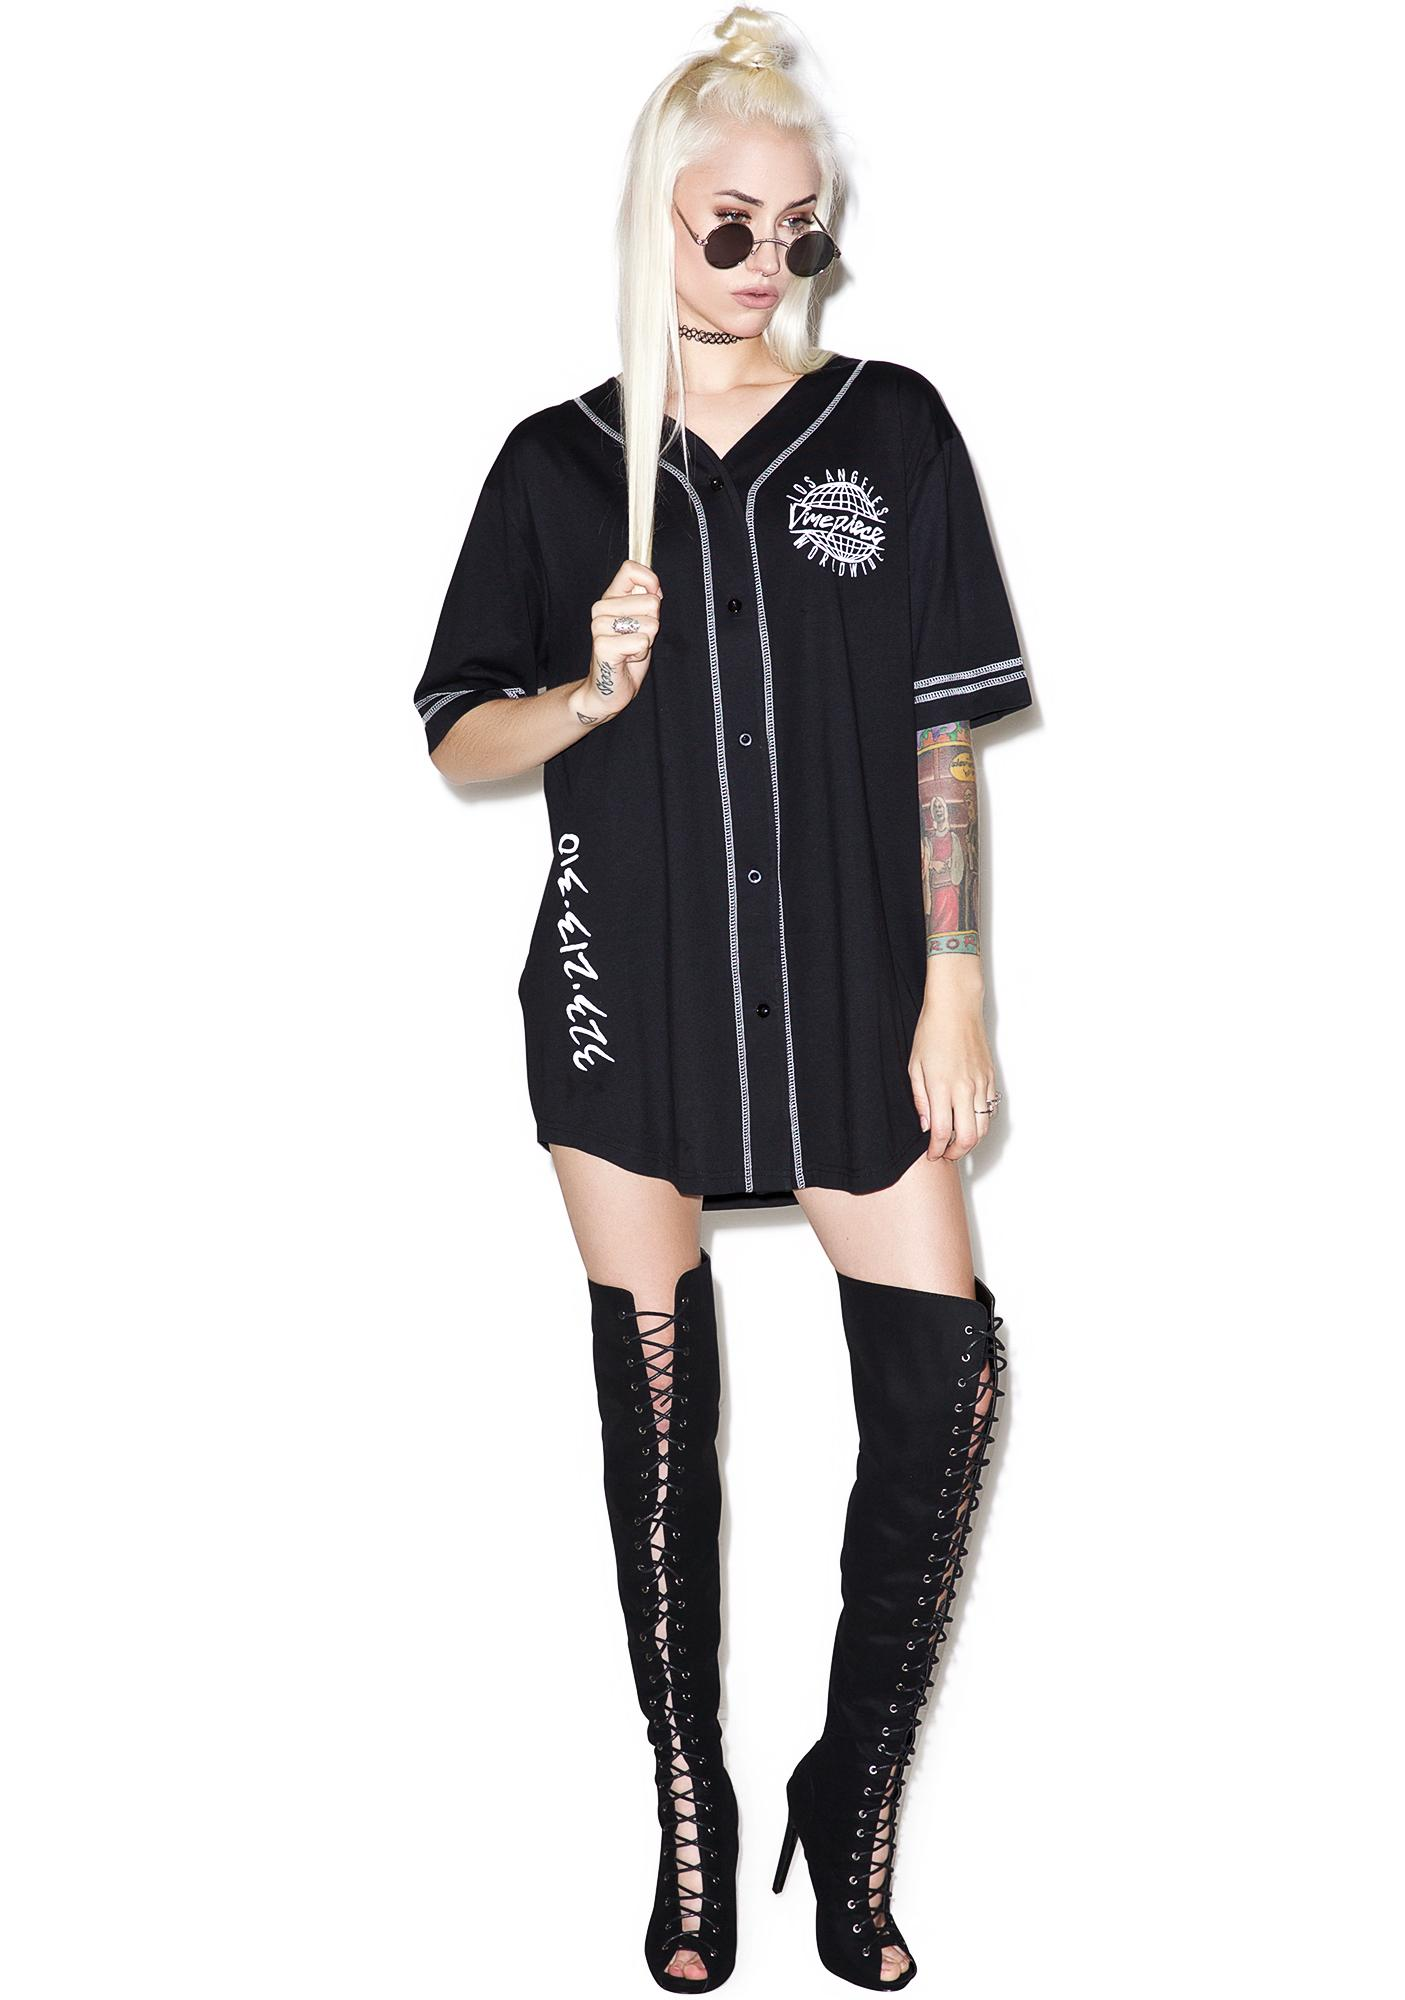 Dimepiece Worldwide Button Up Baseball Jersey